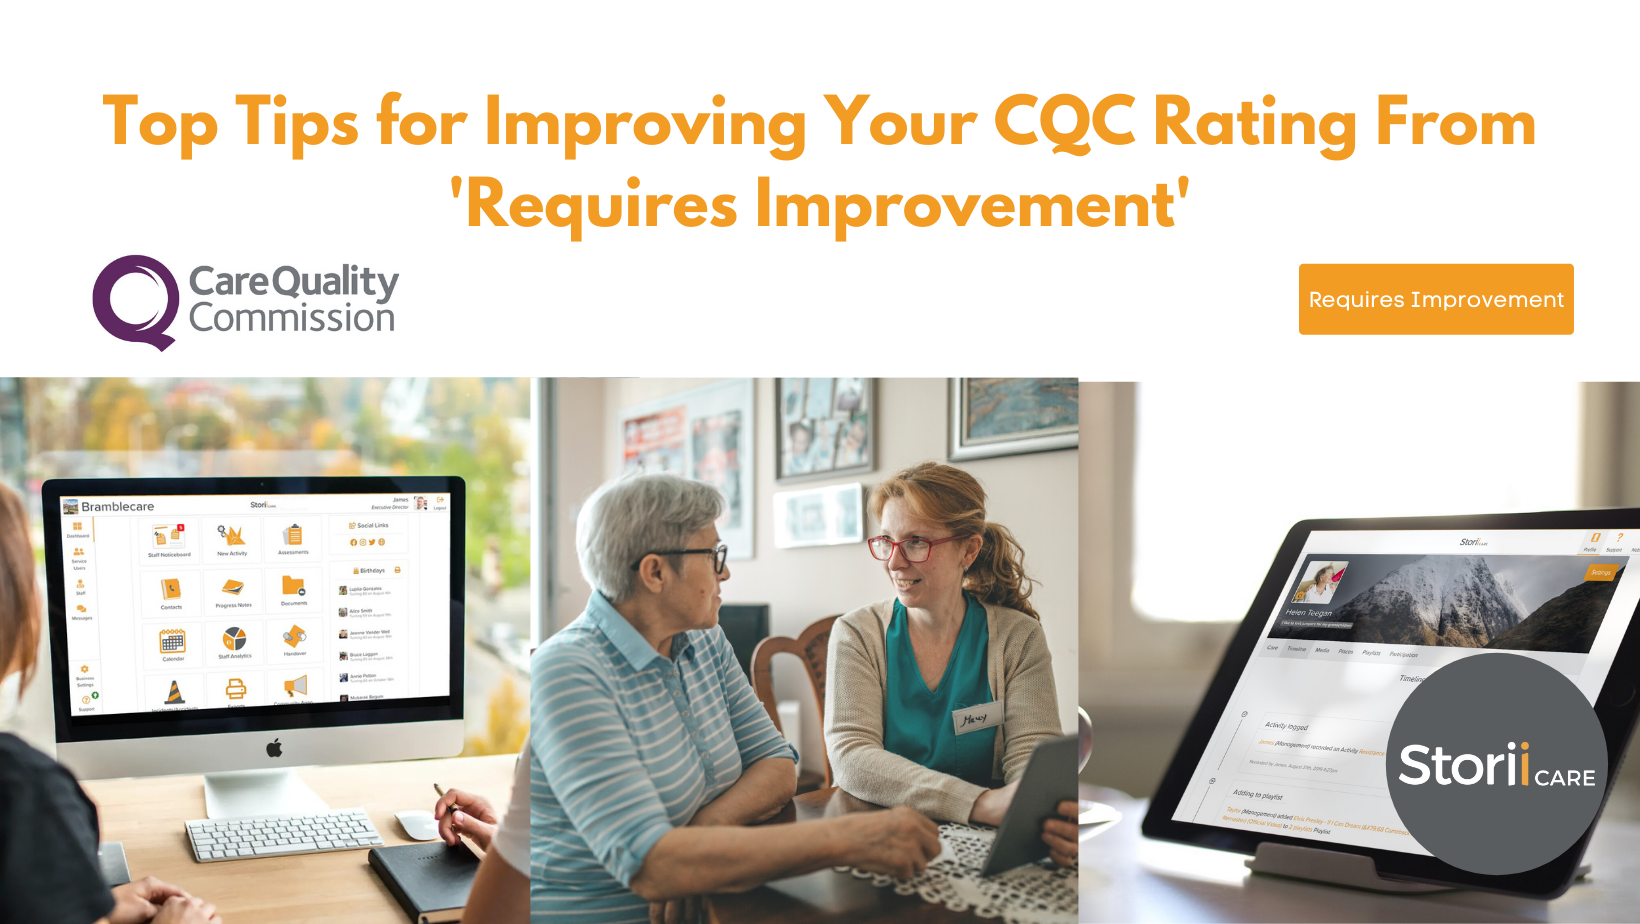 Top Tips for Improving Your CQC Rating From 'Requires Improvement'